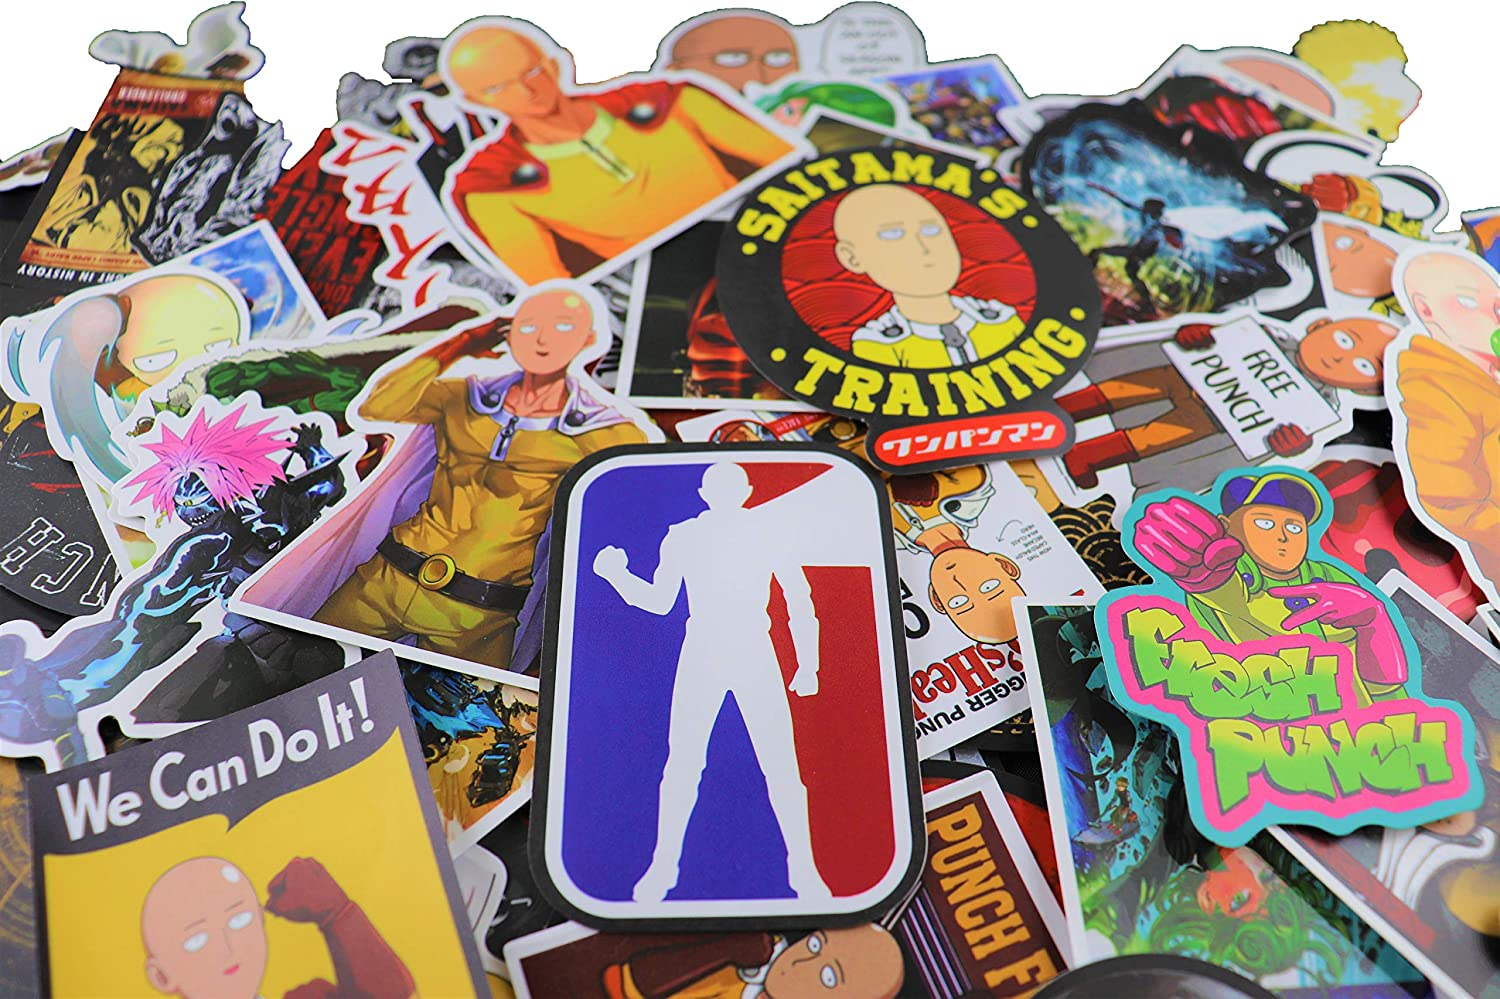 100 pcs One Punch Man Waterproof Stickers Bomb Superheroes for Laptop, Notebooks, Car, Bicycle, Skateboards, Luggage Decoration (One Punch)